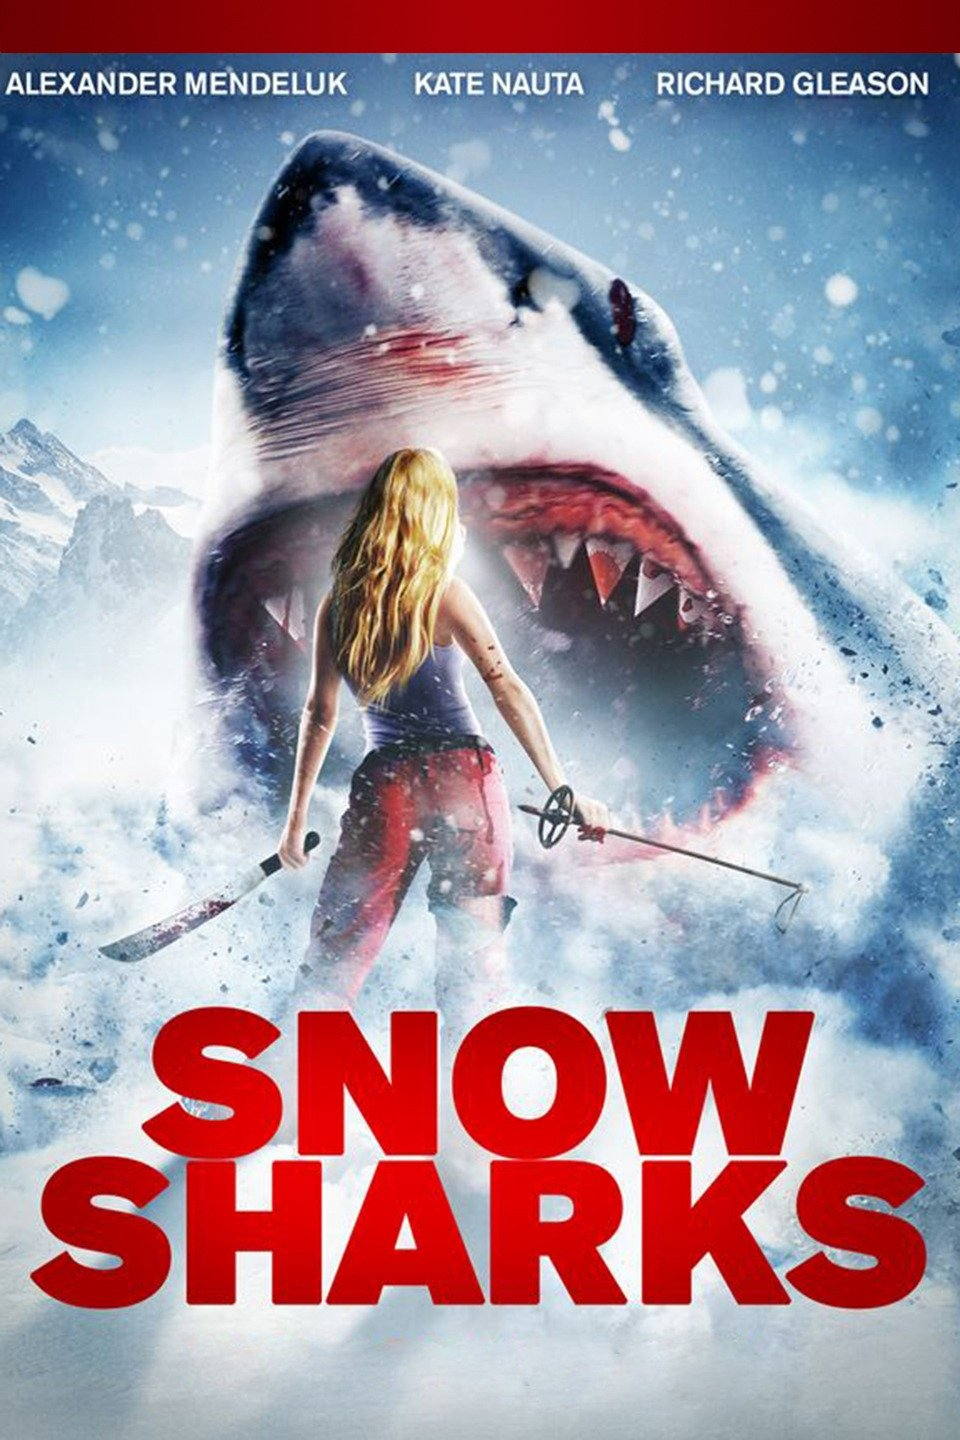 Image result for avalanche sharks (2014)